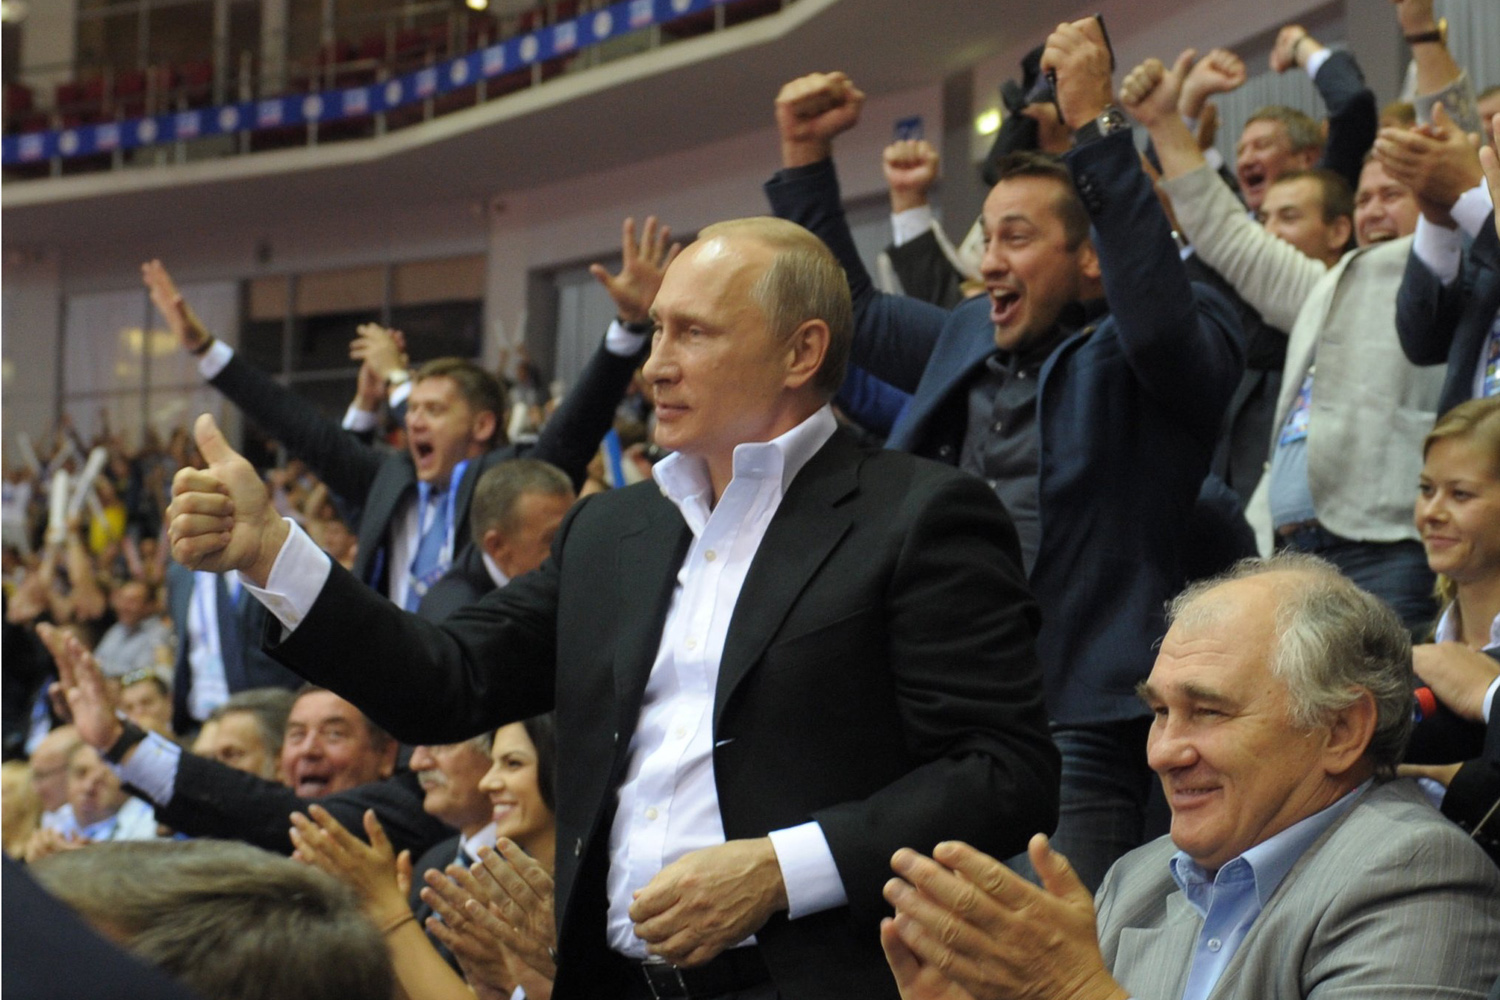 Aug. 31, 2014. Russia's president Vladimir Putin (C) gives a thumbs up during the closing ceremony of the 2014 World Judo Championships.